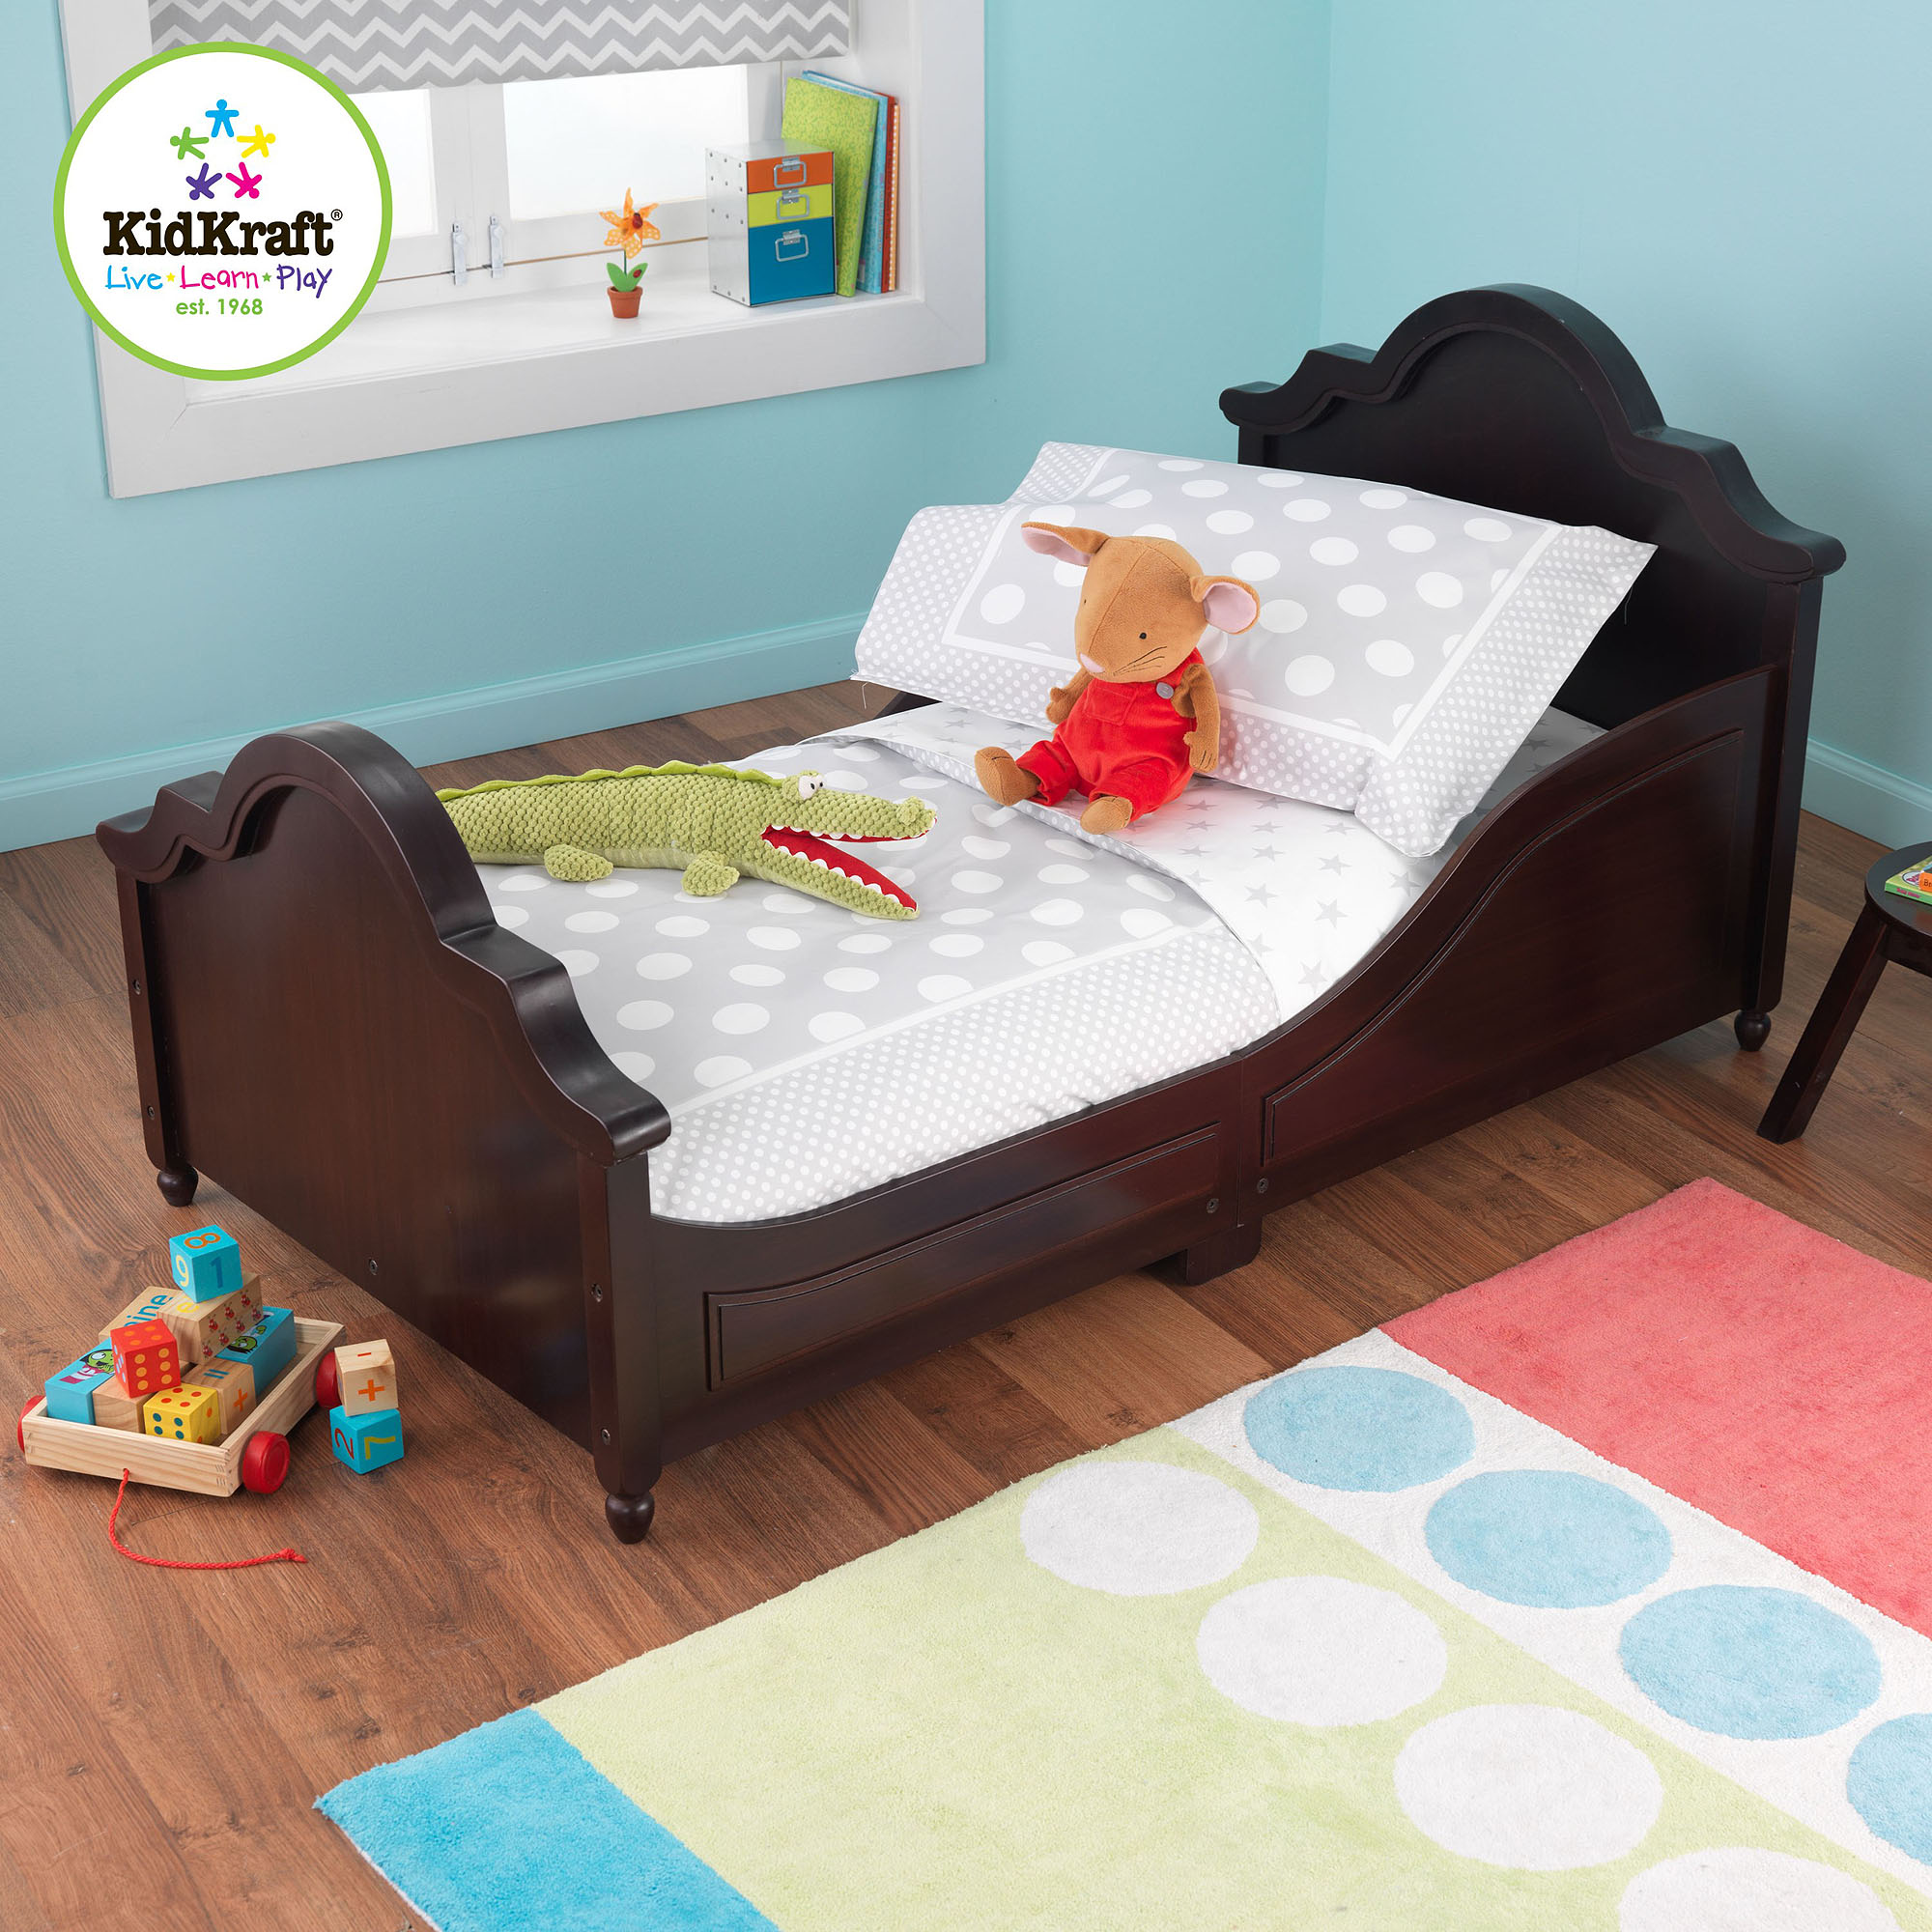 KidKraft Spots and Dots Gray 4-Piece Toddler Bedding Set